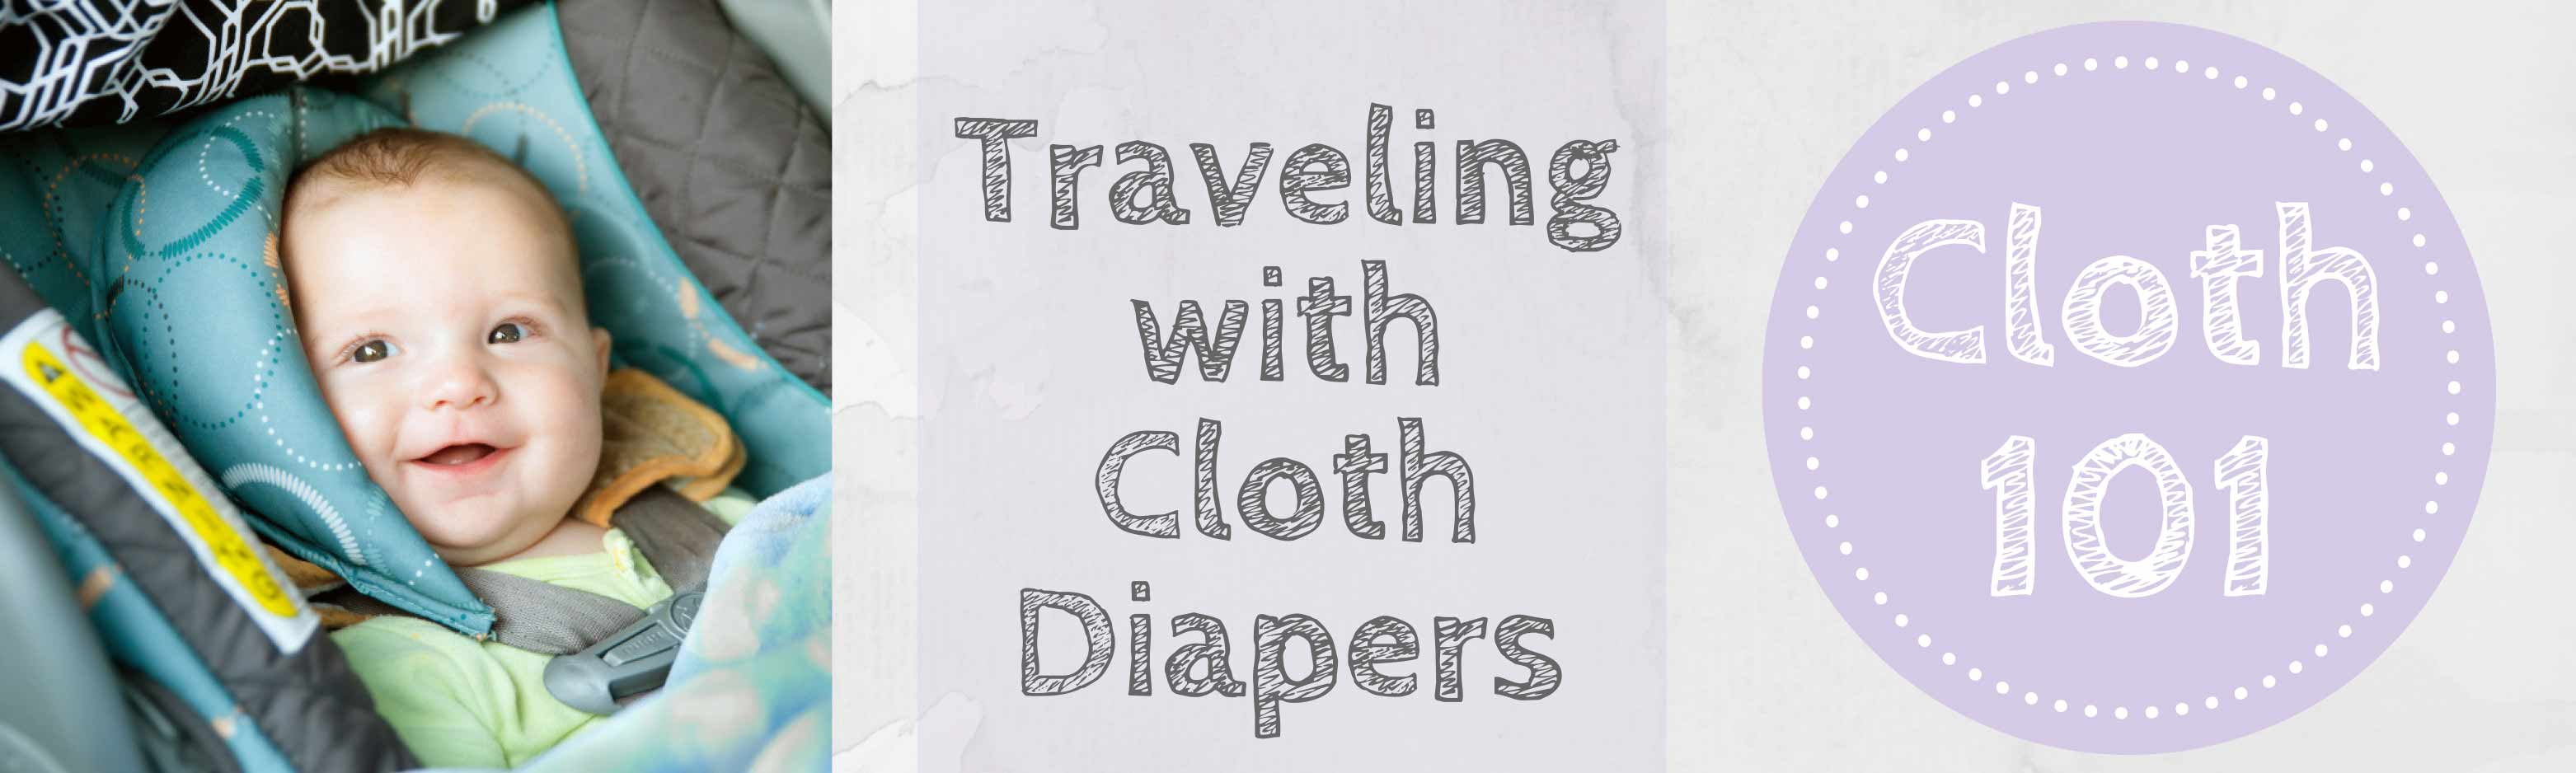 Mother ease Blog Banner - Traveling with Cloth Diapers